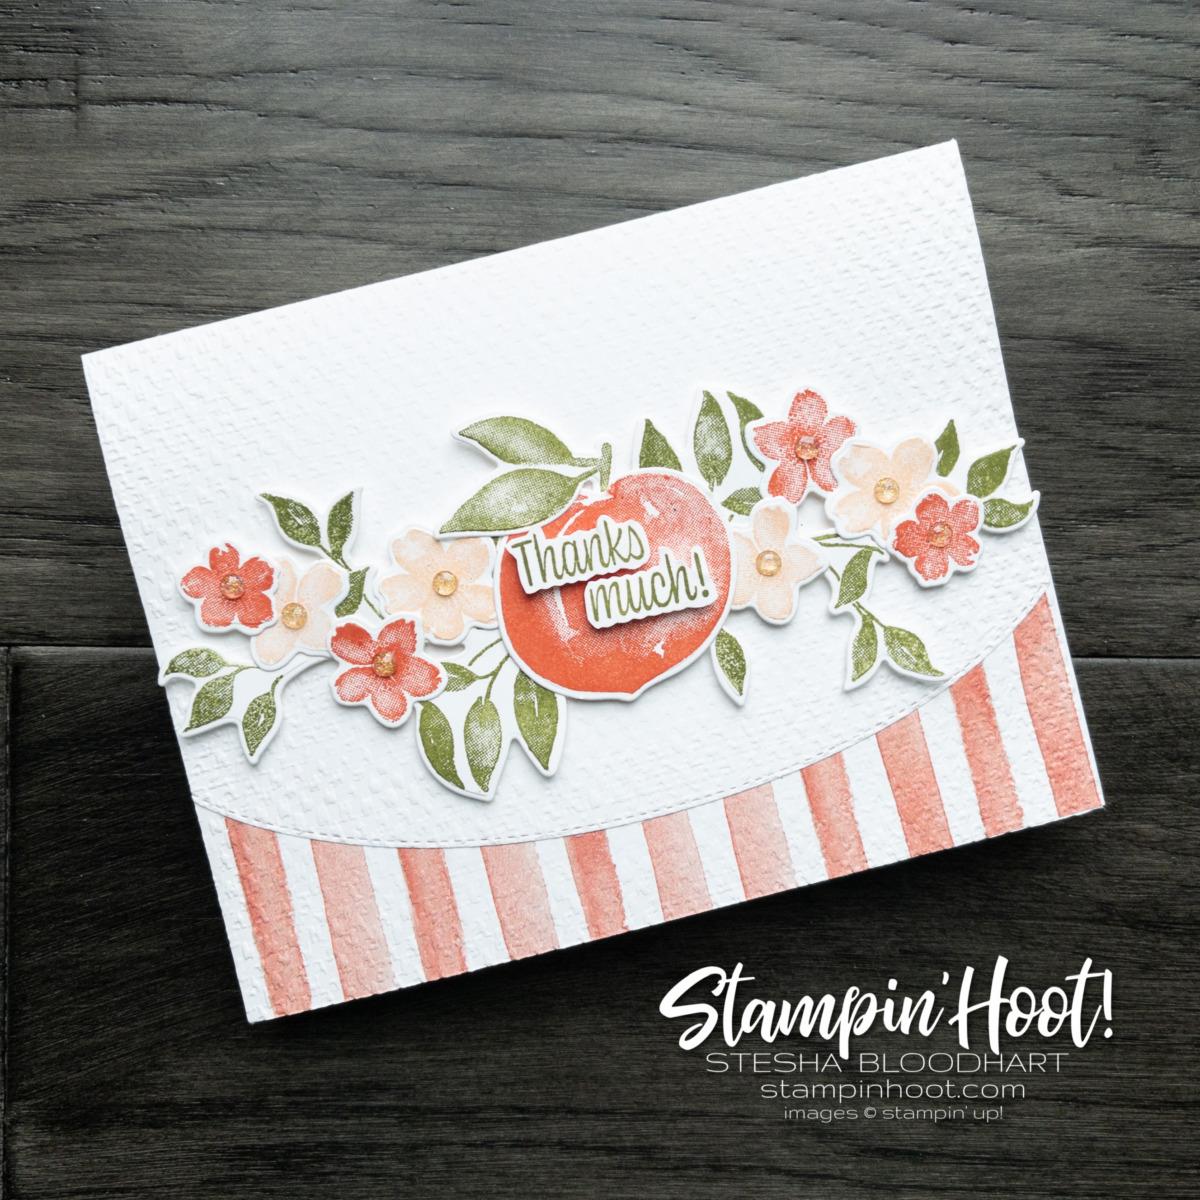 You're a Peach Suite Collection Stampin' Up! Thanks Much Card by Stesha Bloodhart, Stampin' Hoot!